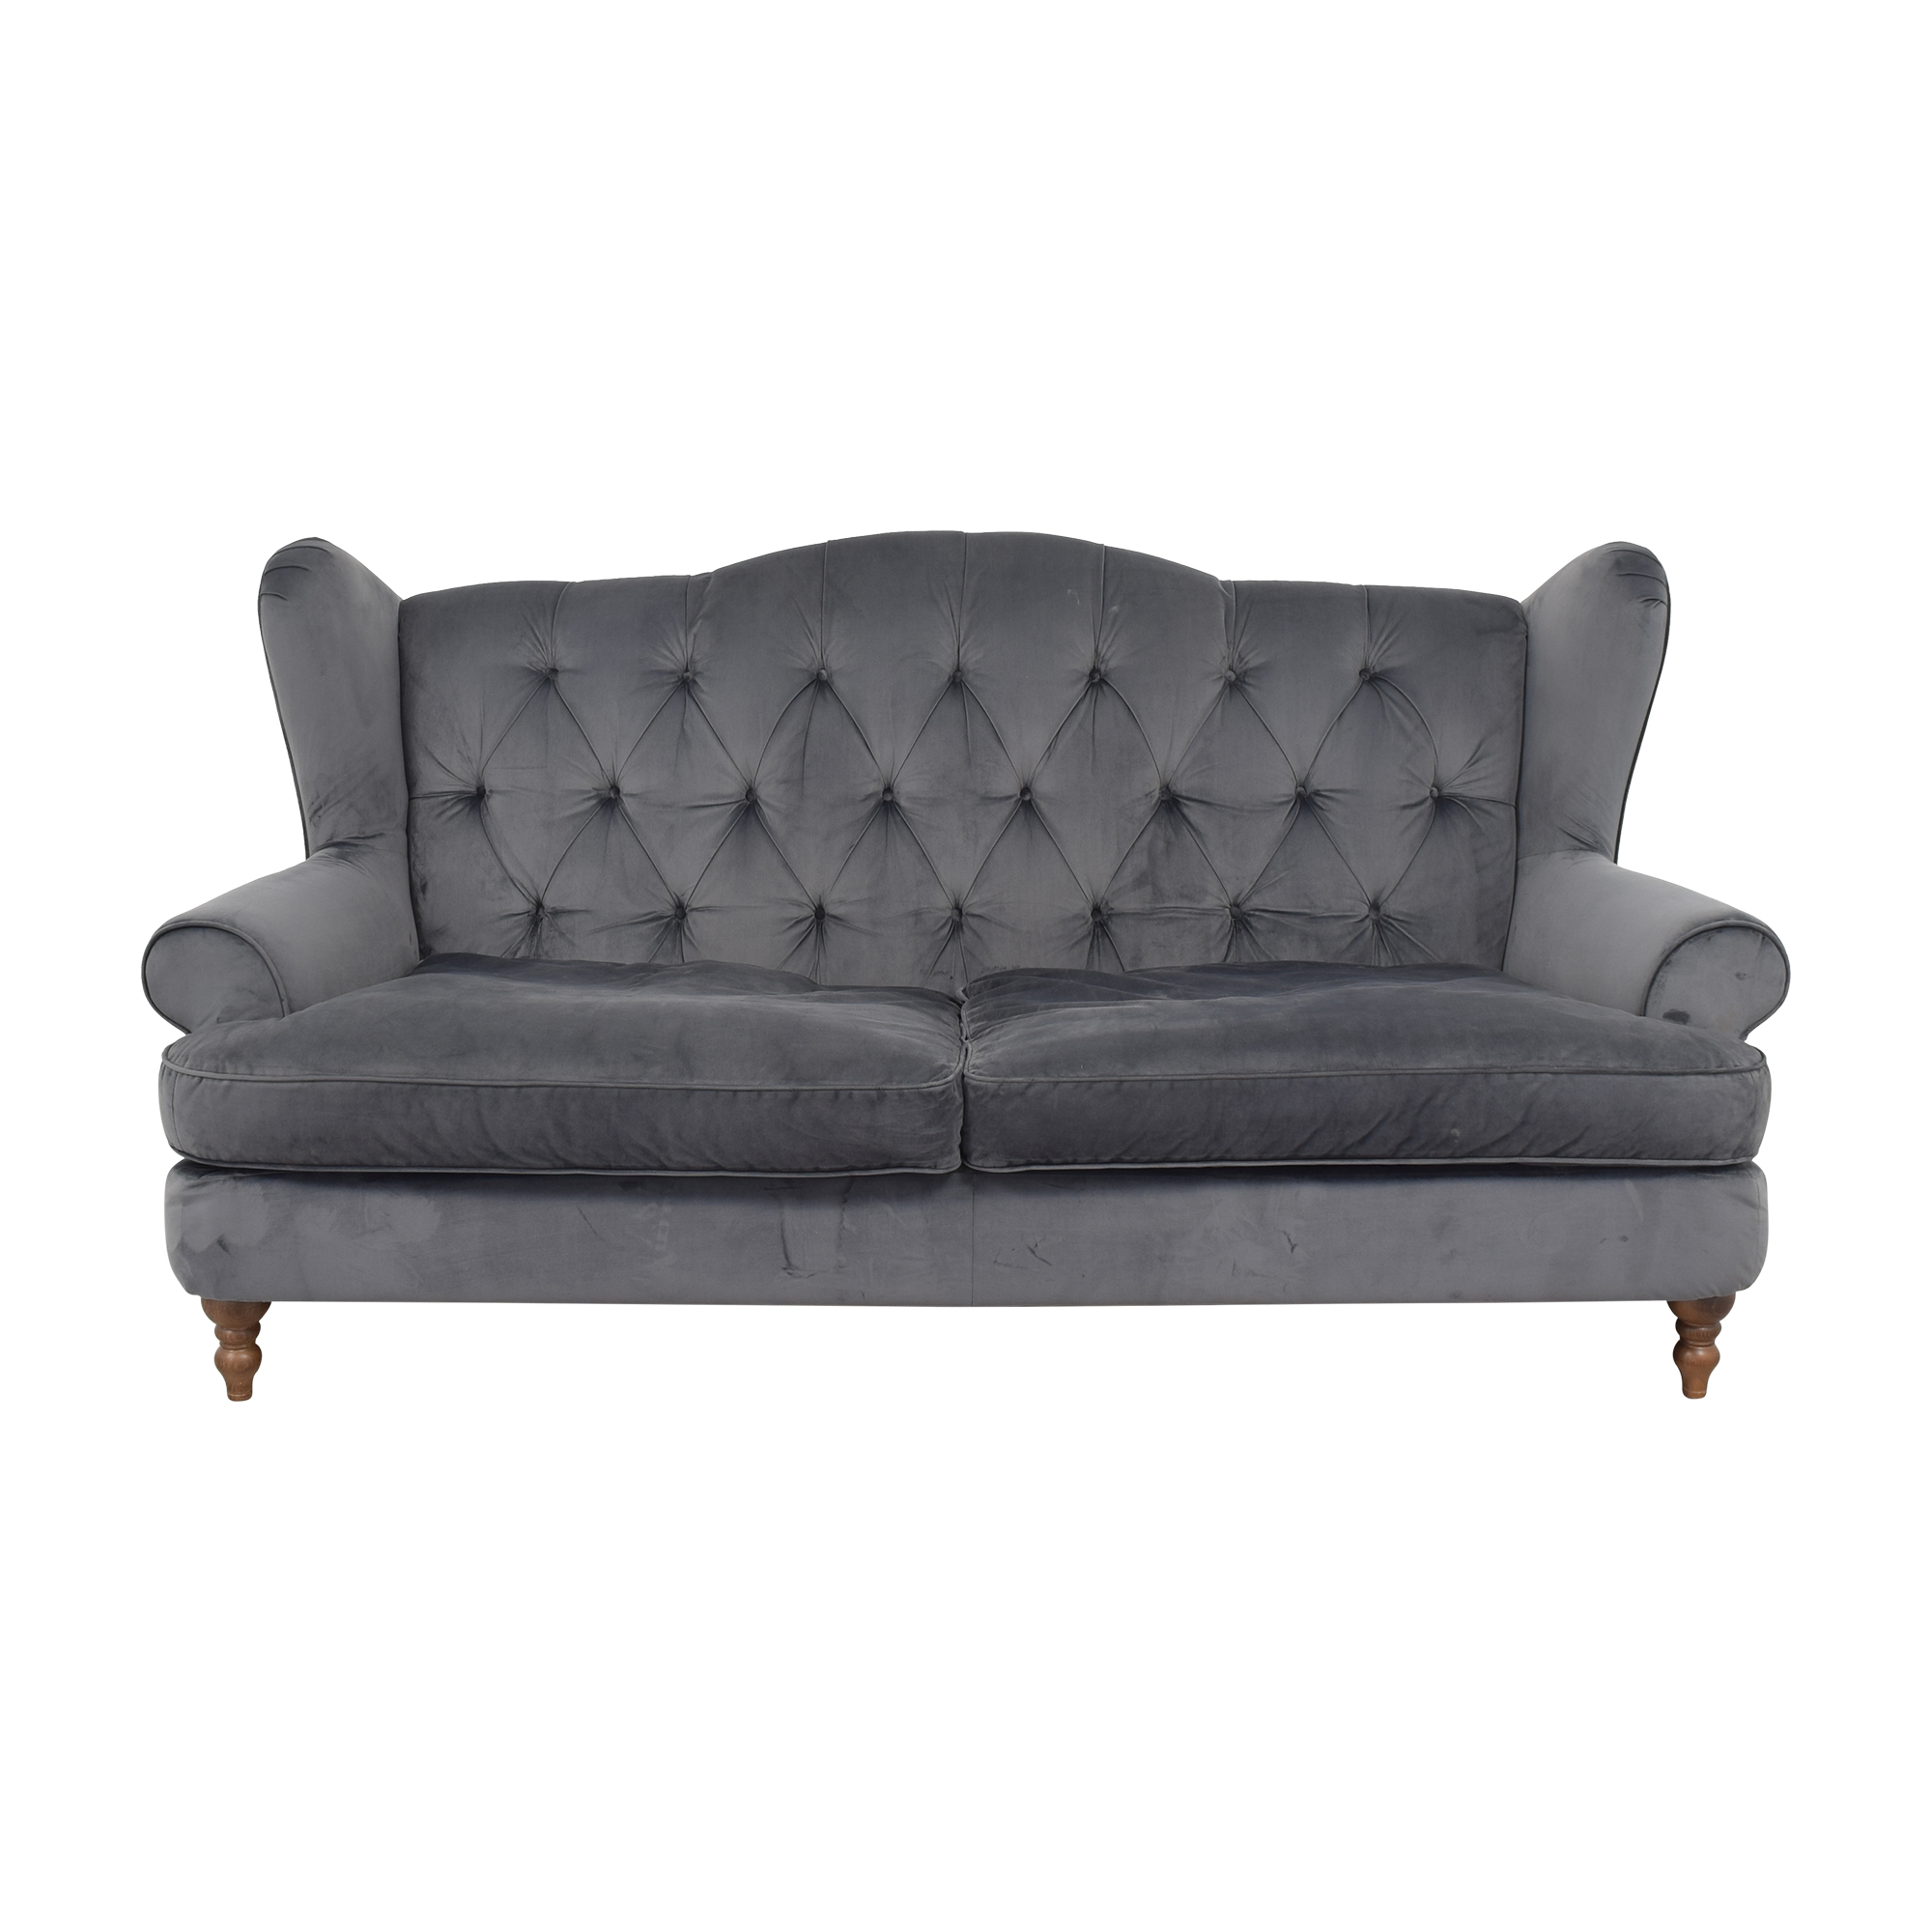 Sofology Sofology Liberte 3 Seater Sofa price